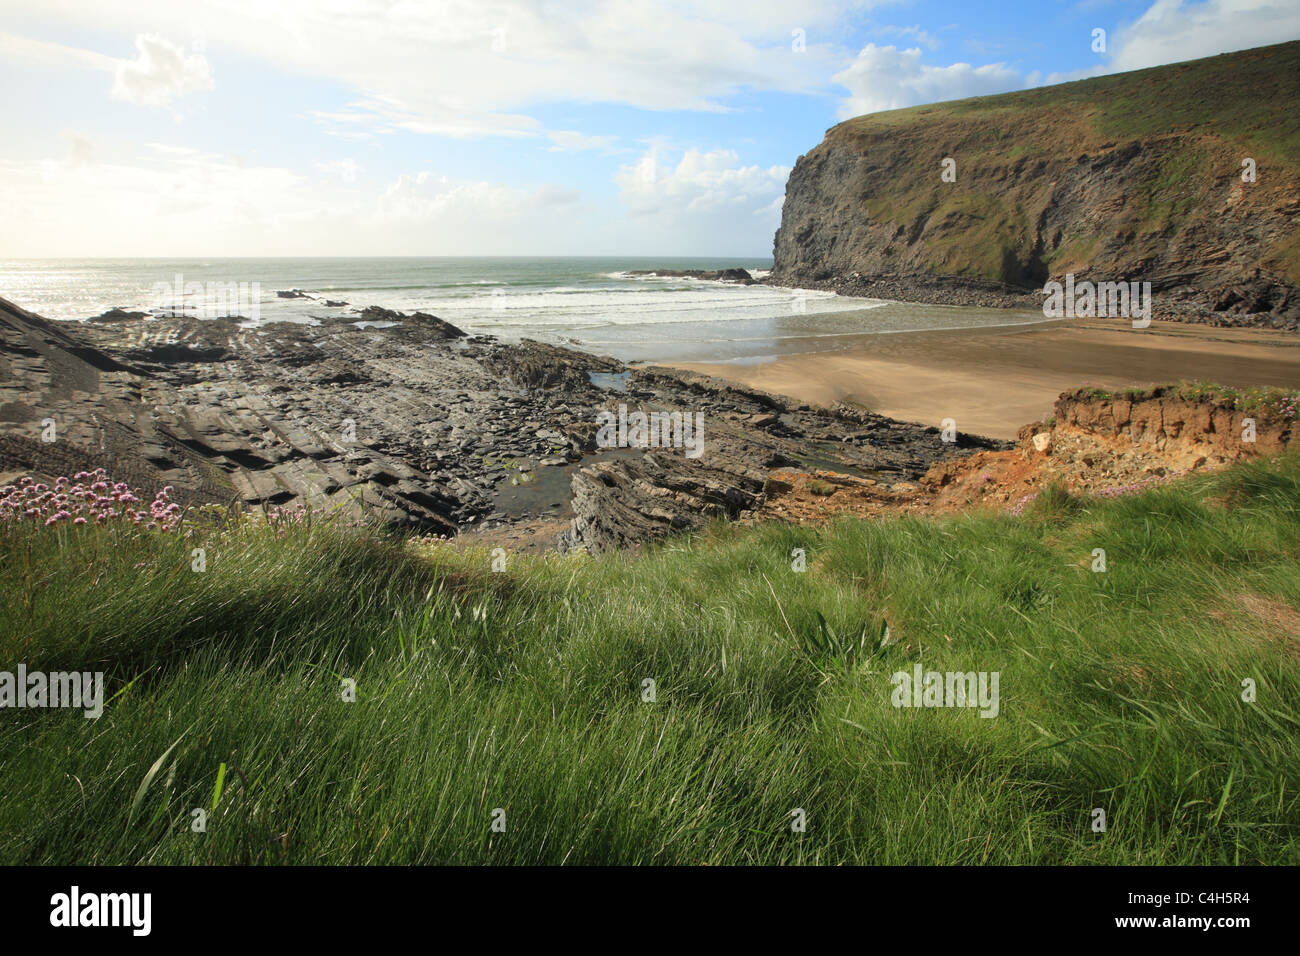 Crackington Haven, North Cornwall, England, UK - Stock Image